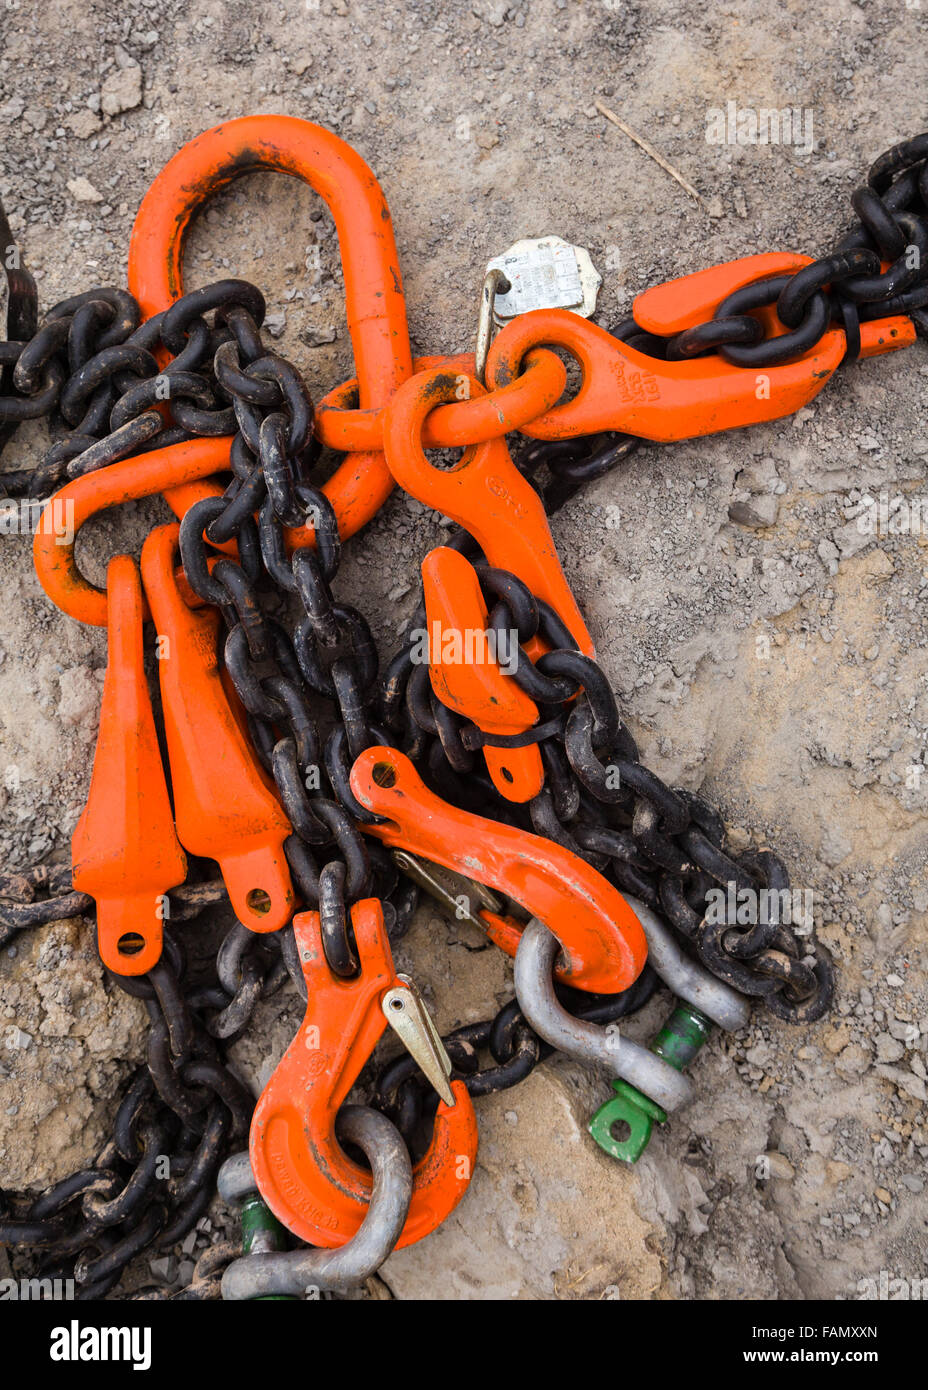 Industrial chains and hooks on a construction site. - Stock Image